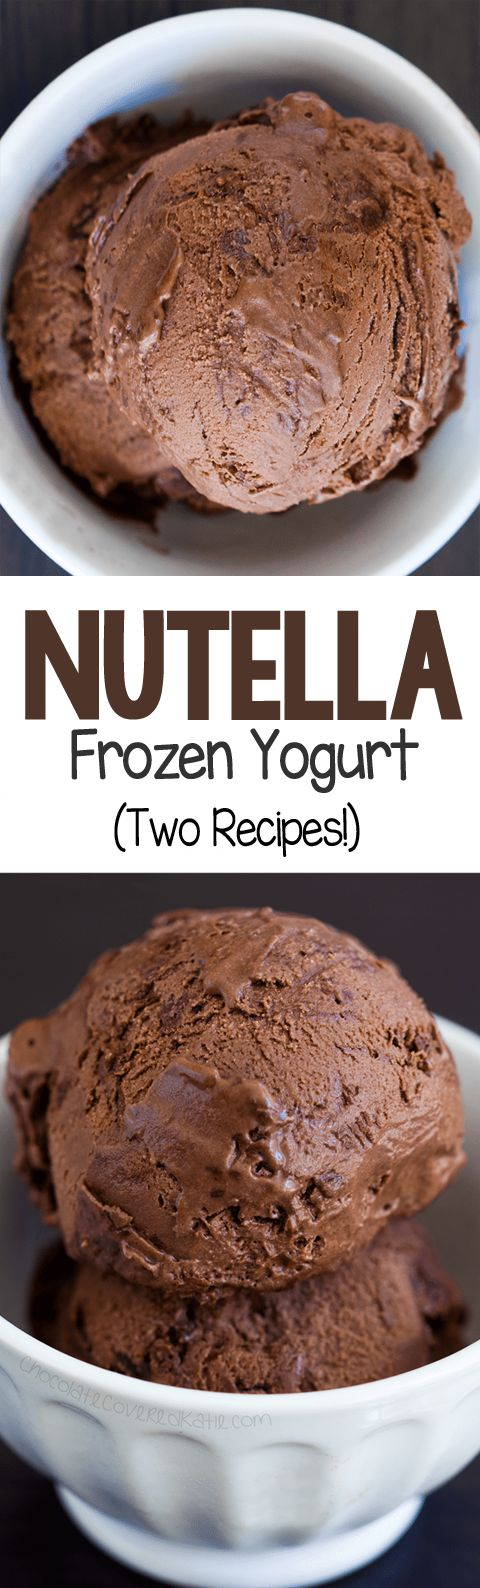 Easy Homemade Nutella Frozen Yogurt!